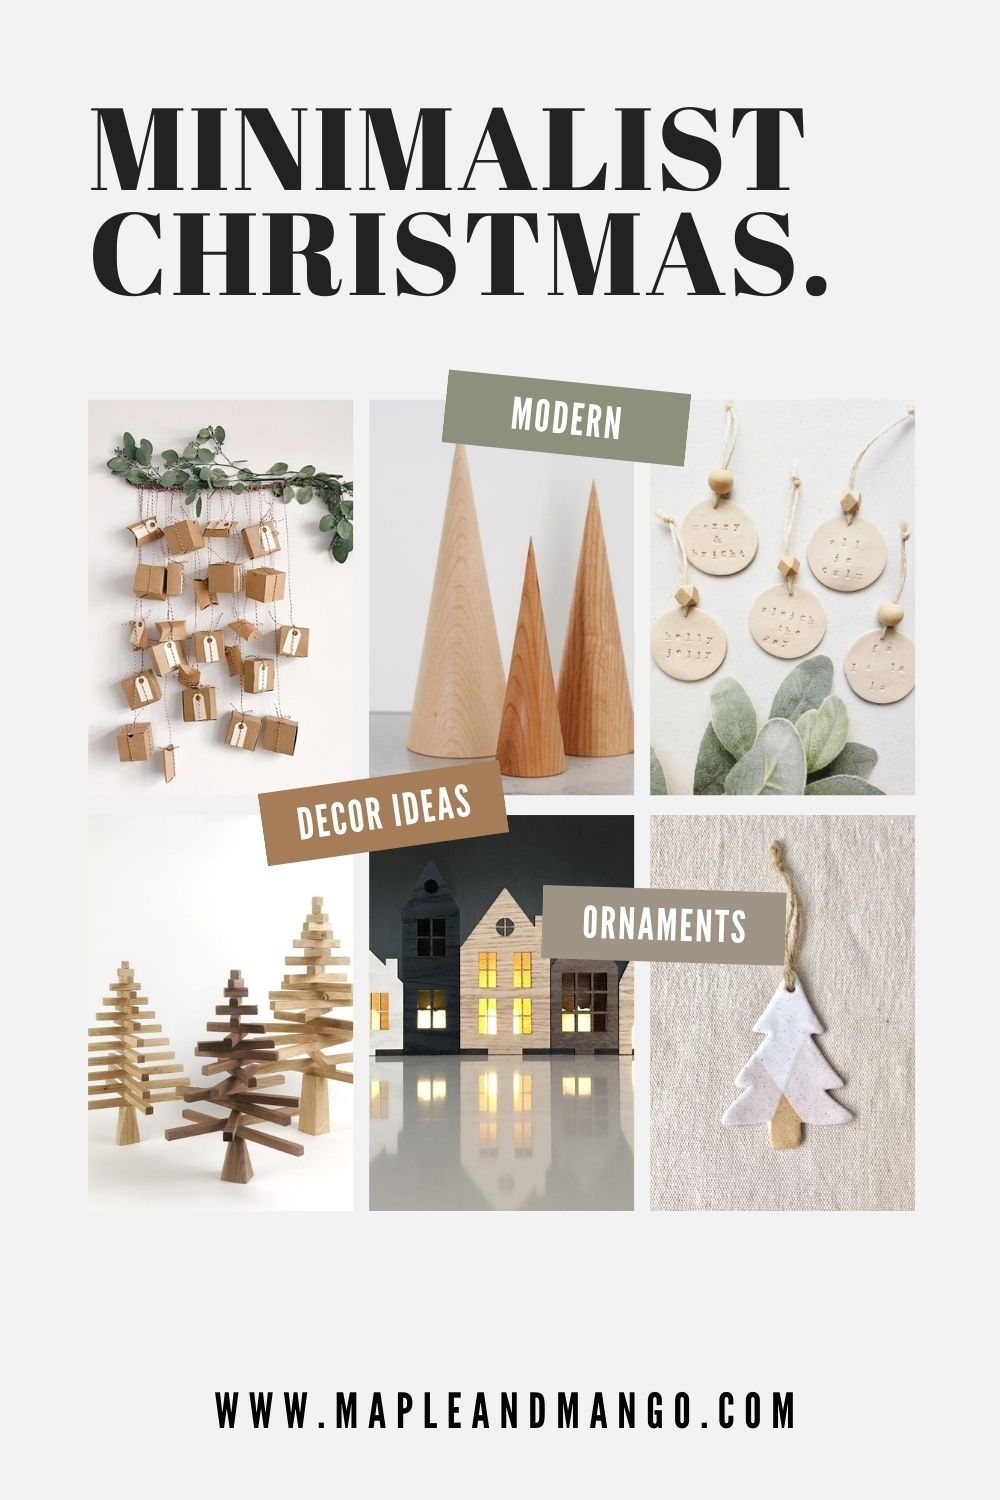 Pinterest graphic for minimalist Christmas decor ideas.